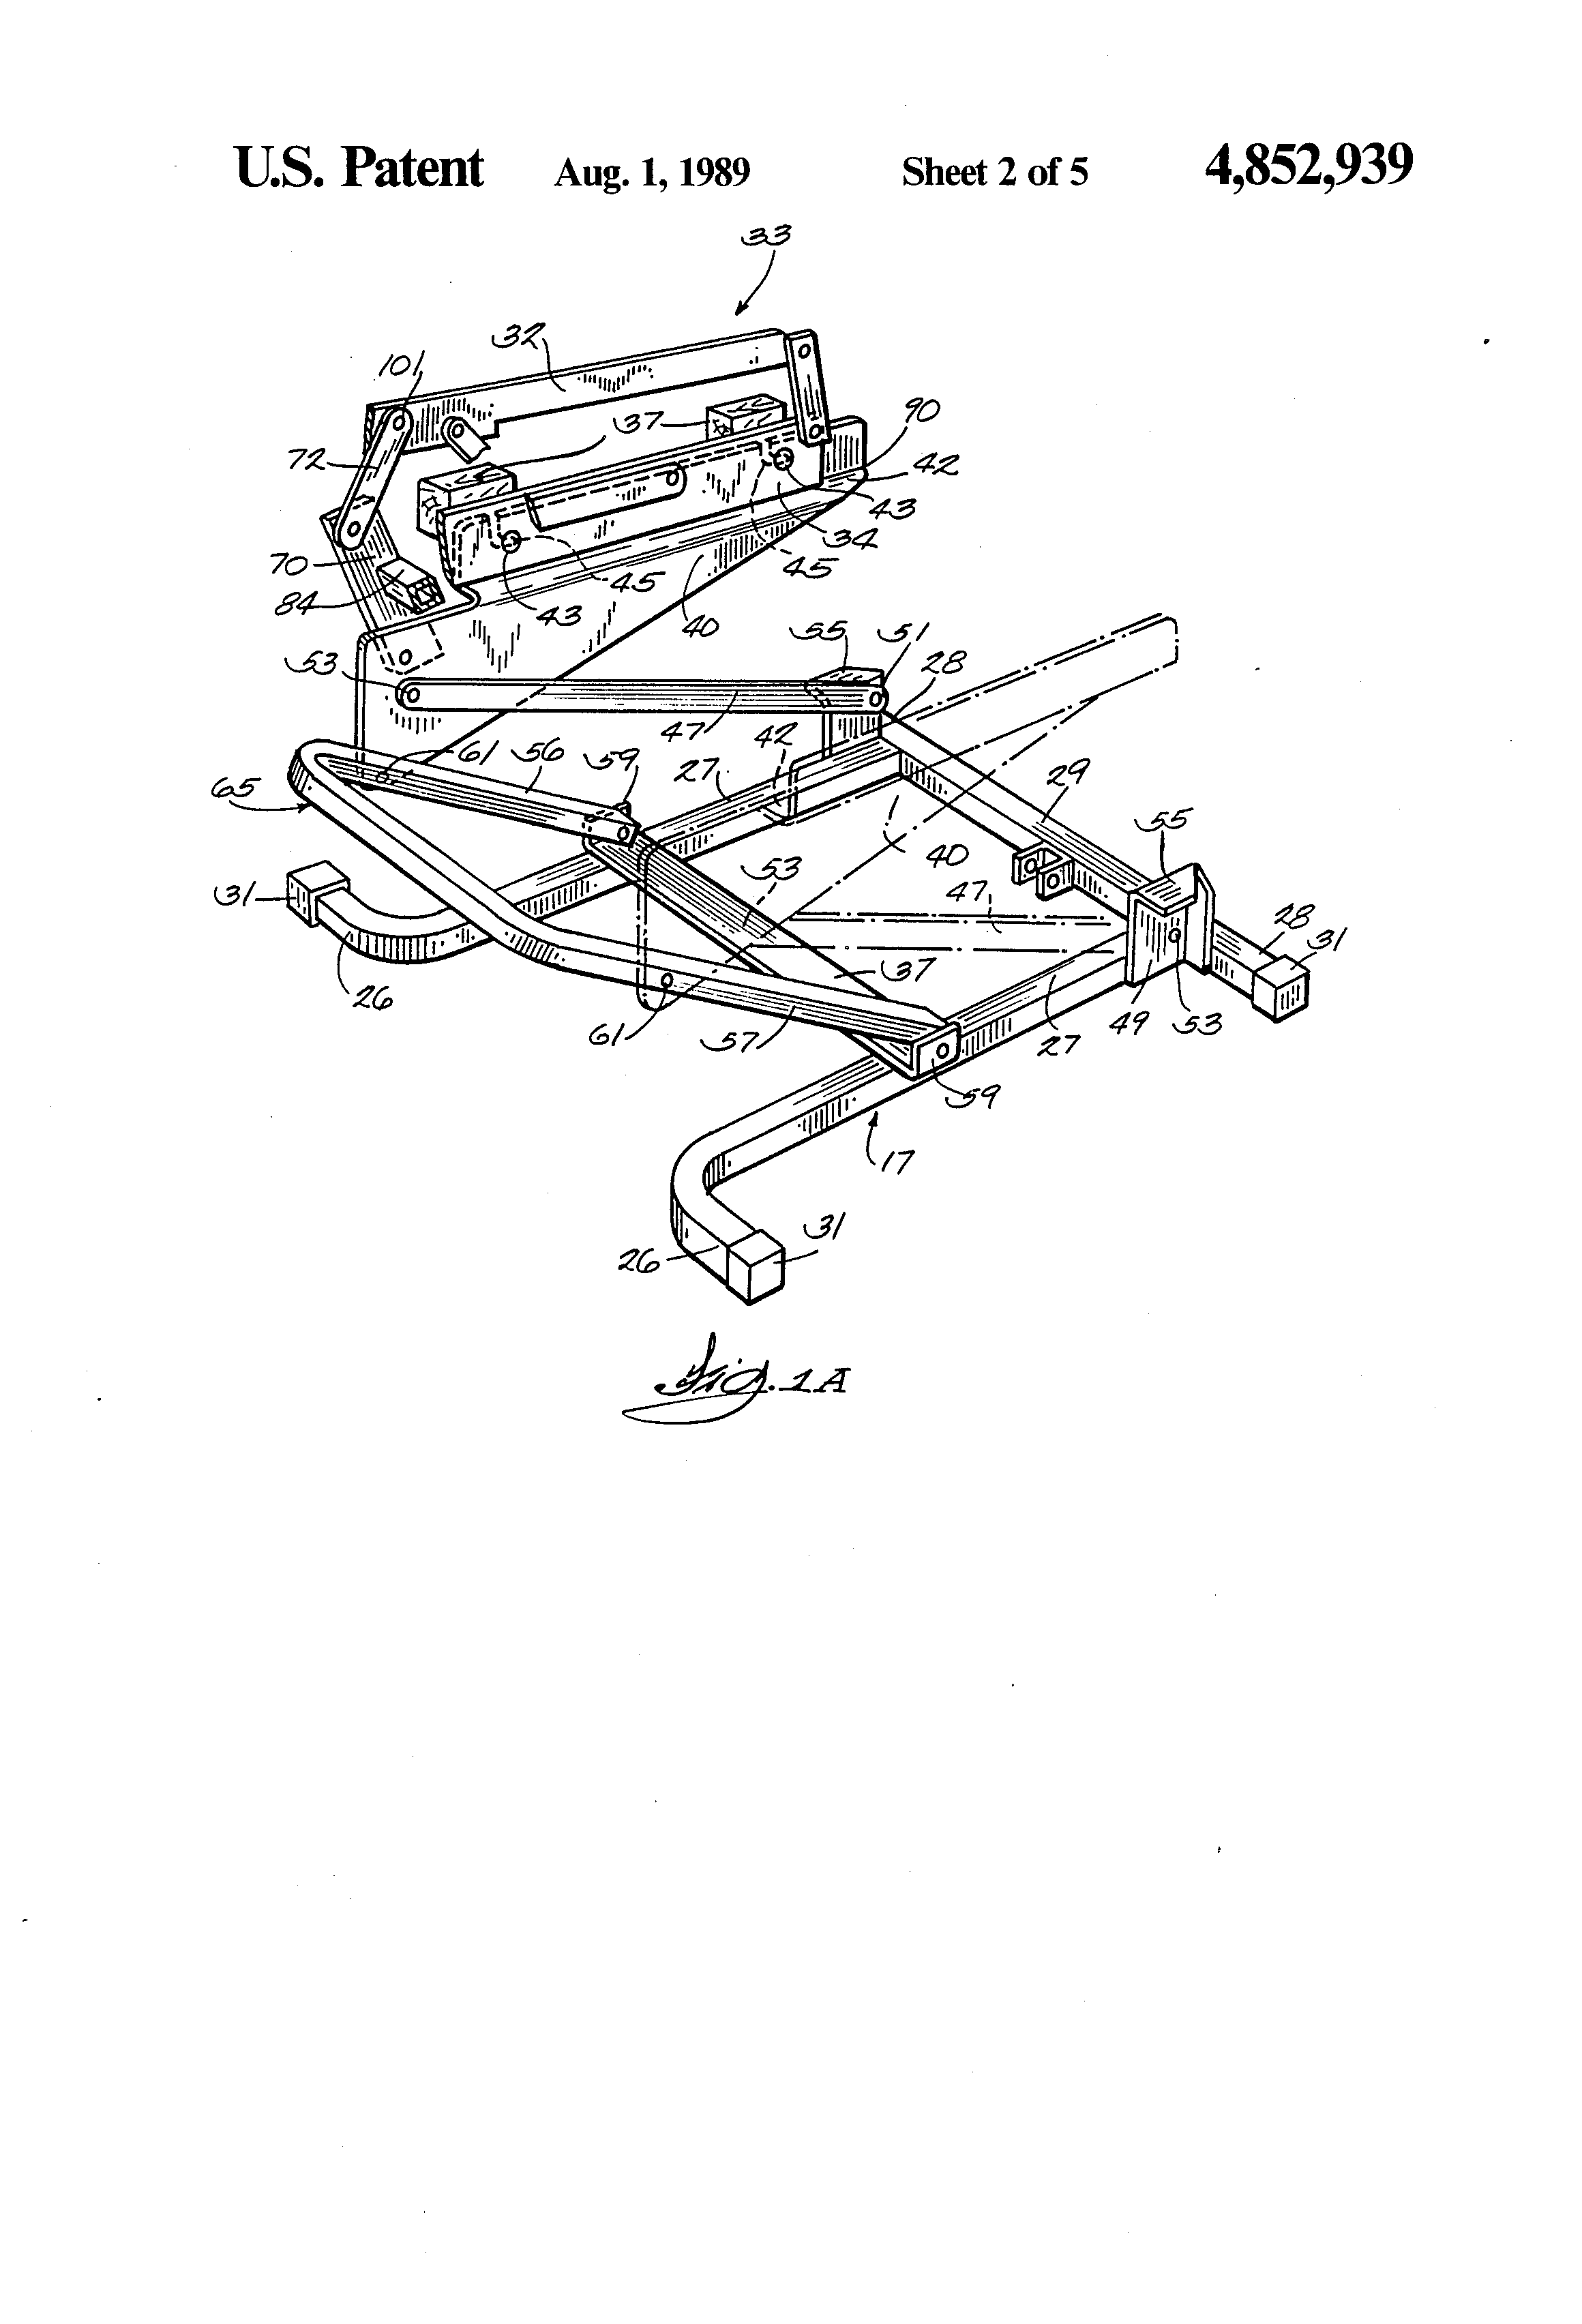 Patent US Device for converting a recliner chair to a